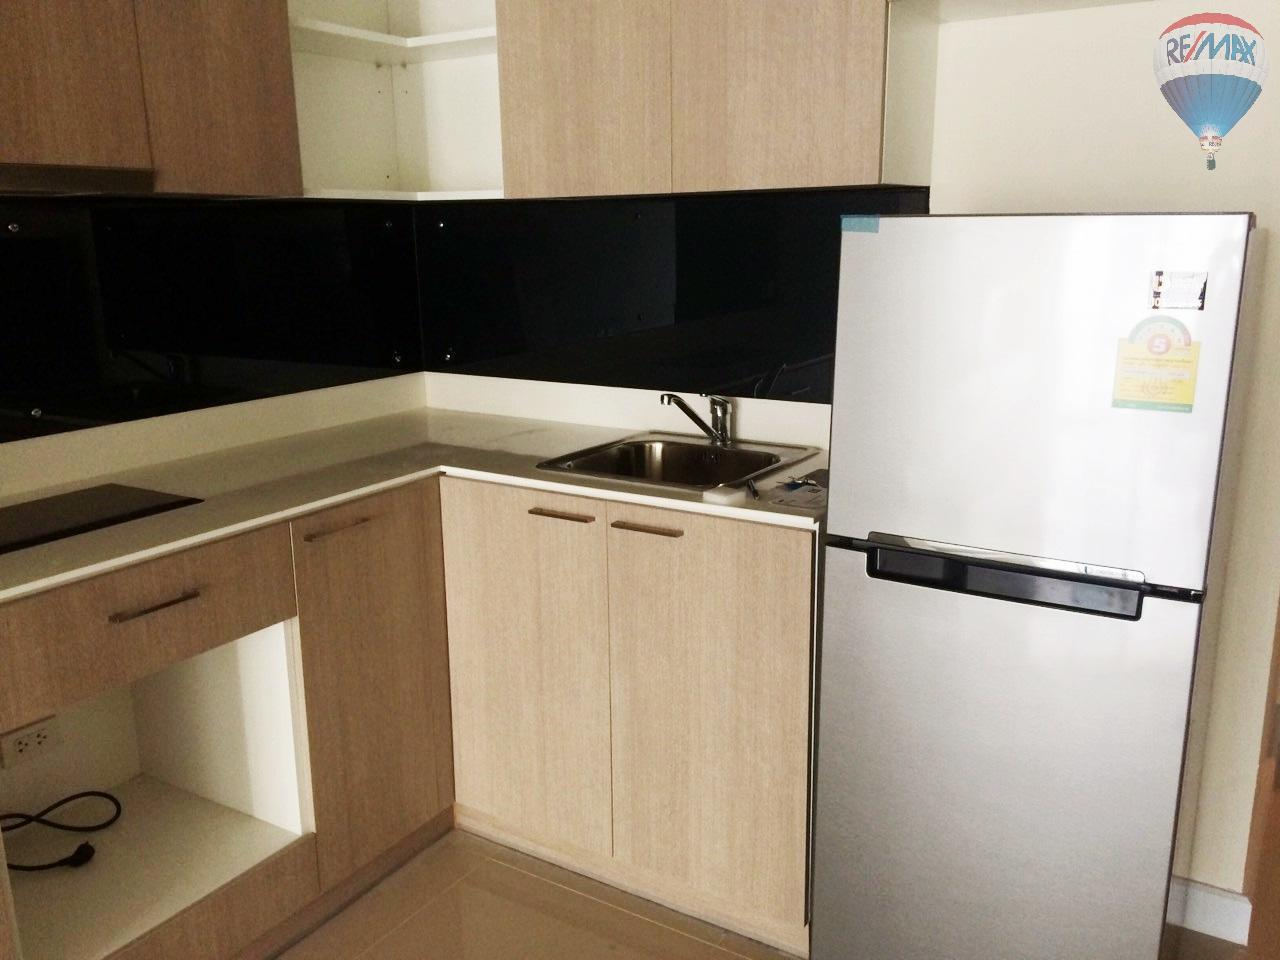 RE/MAX Properties Agency's 2 Bedroom 86 sq.m. for Rent at Asoke Place 5